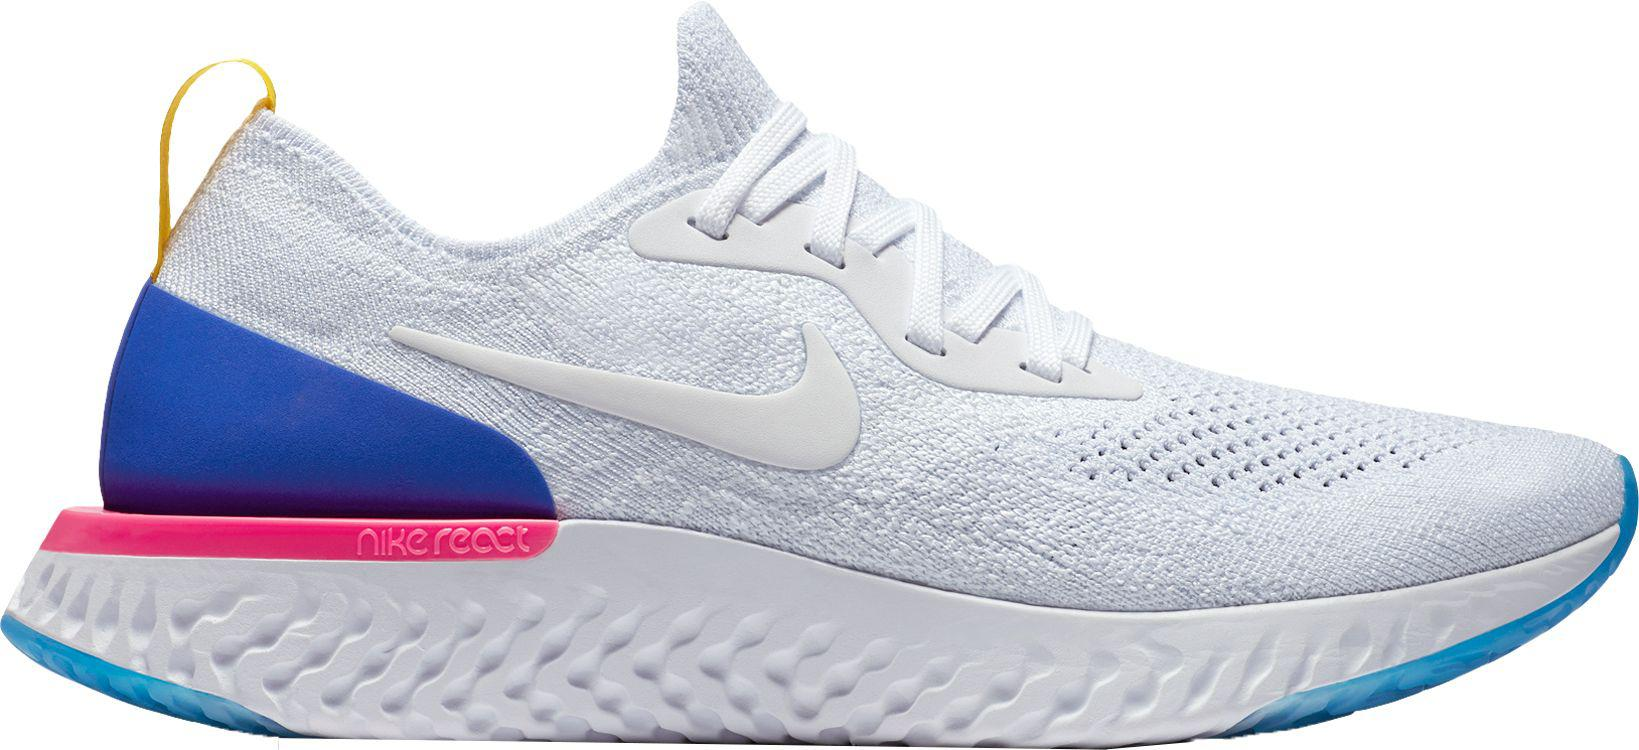 30f34a182116e Lyst - Nike Epic React Flyknit Running Shoes in Blue